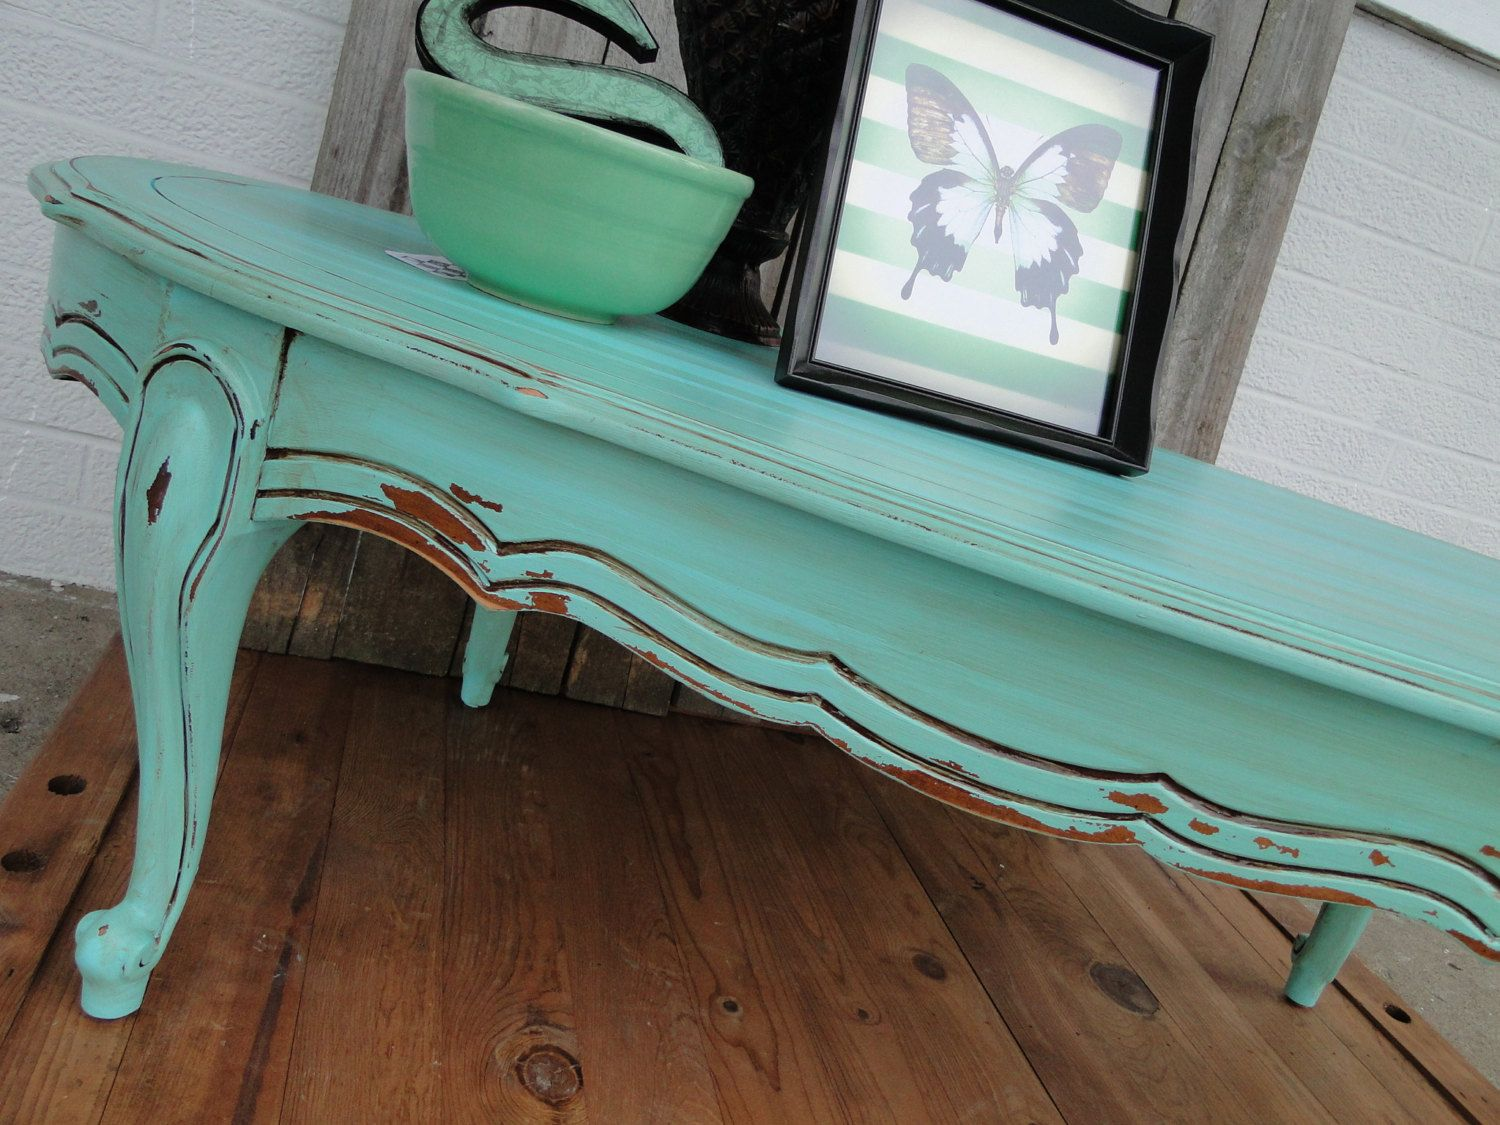 Vintage Wooden Oval Coffee Table With Cuvy Legs In Distressed Aqua Mint Rustic Beach Cottage Shabby Chic Country French Conutry Primitive